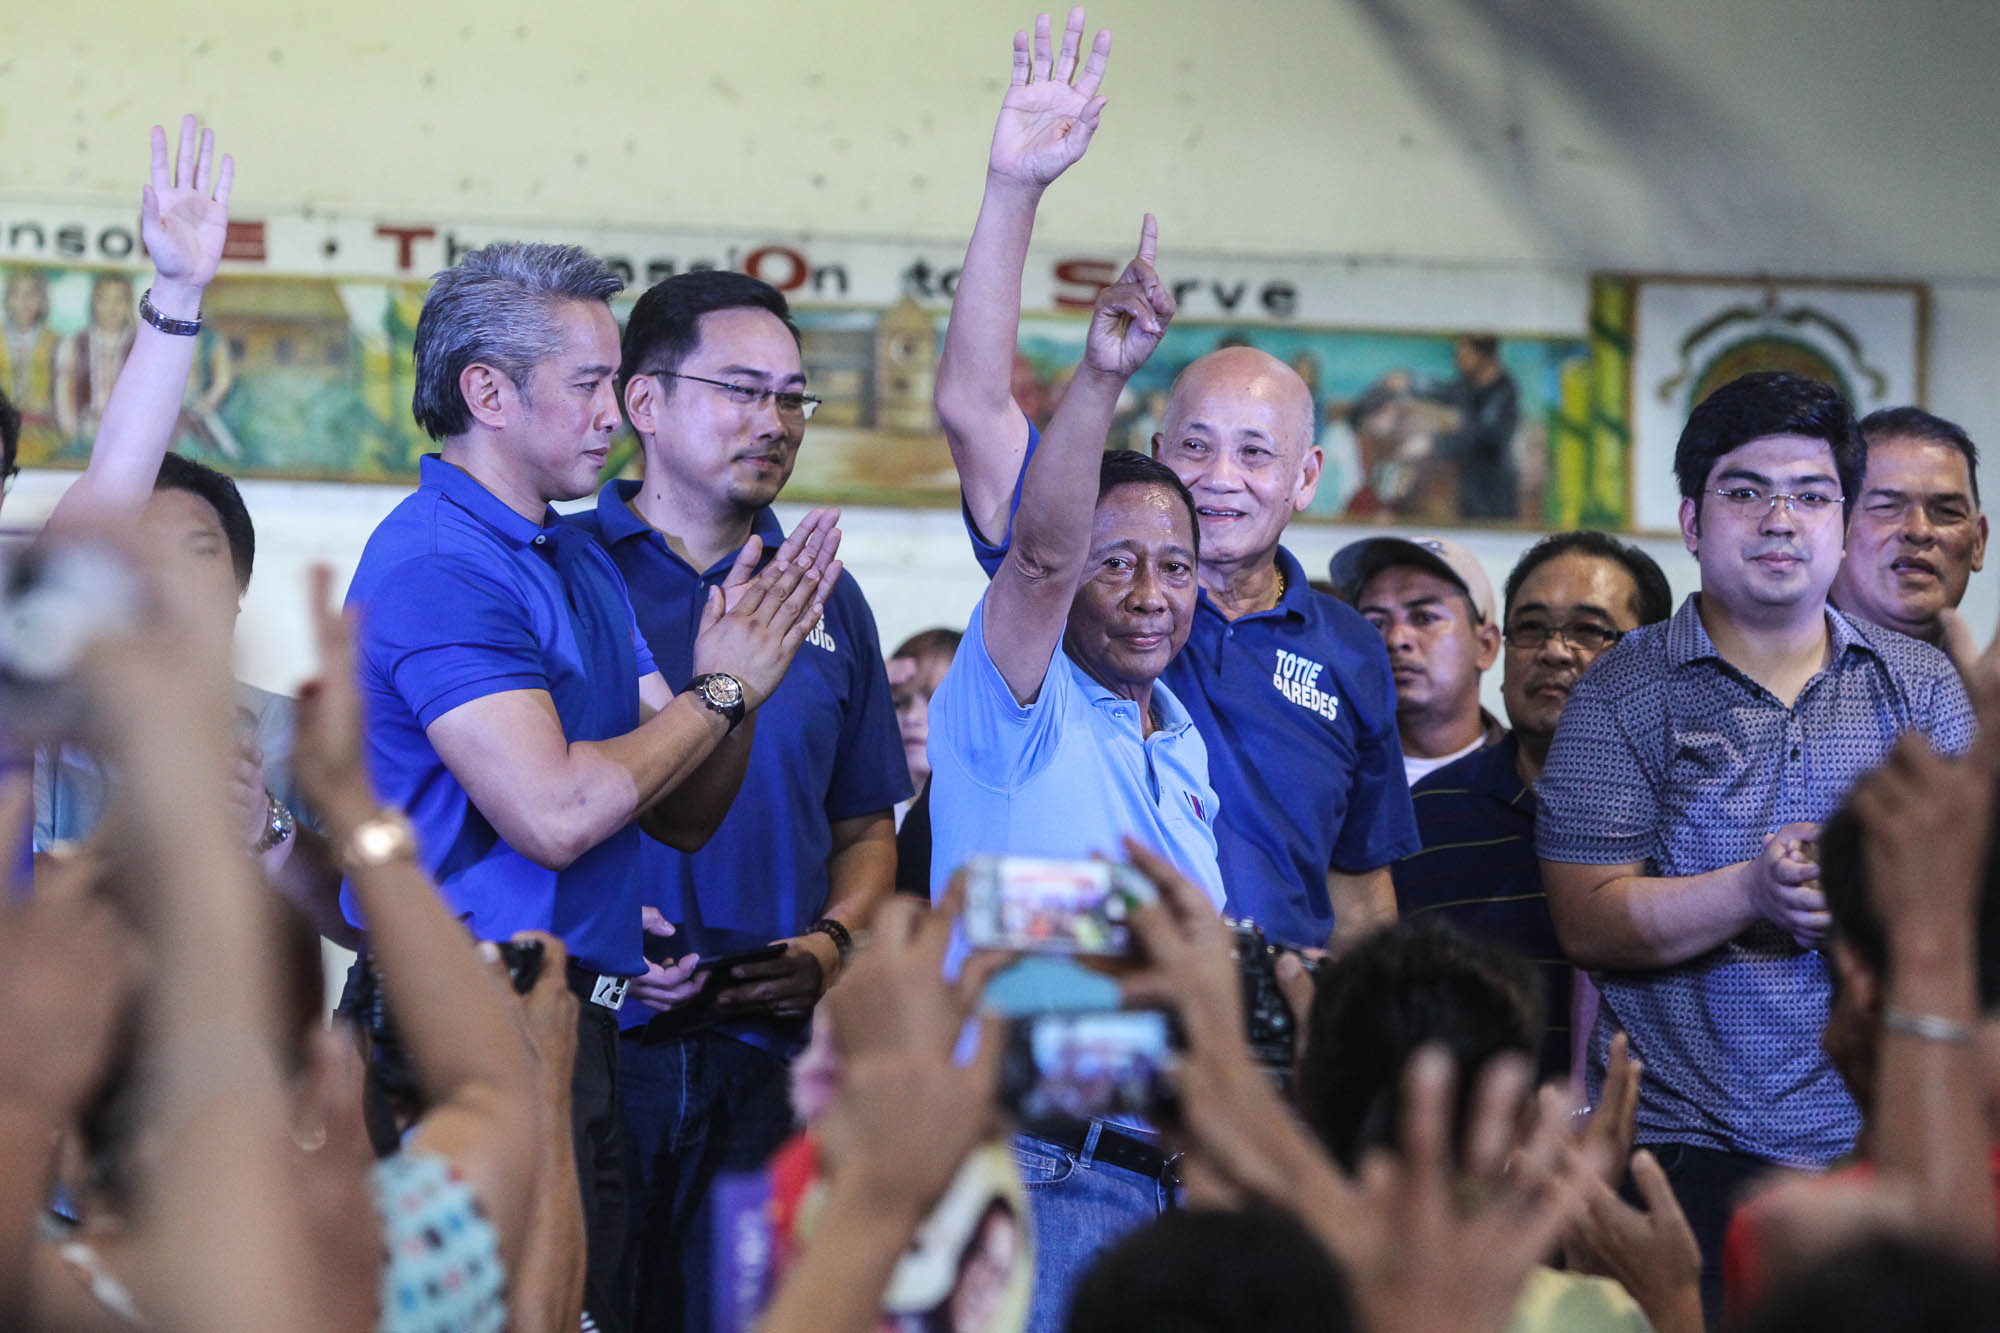 BINAY'S FRIENDS. Remulla claps as Binay flashes UNA's sign in front of Caviteu00f1os. To the left of the Vice President is Vice Governor Jolo Revilla, another ally. Lito Boras/Rappler